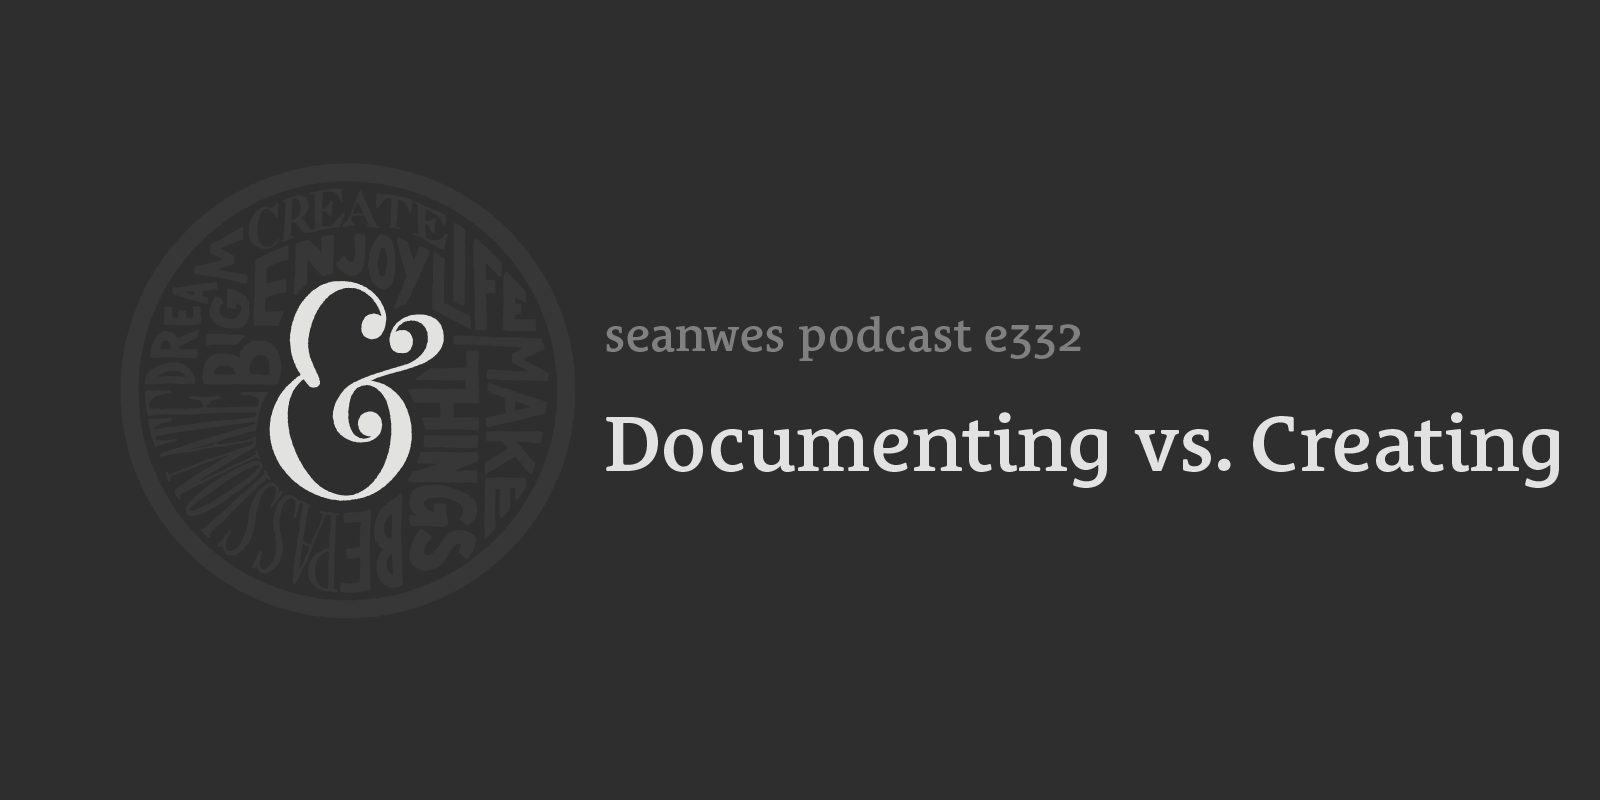 Documenting vs. Creating